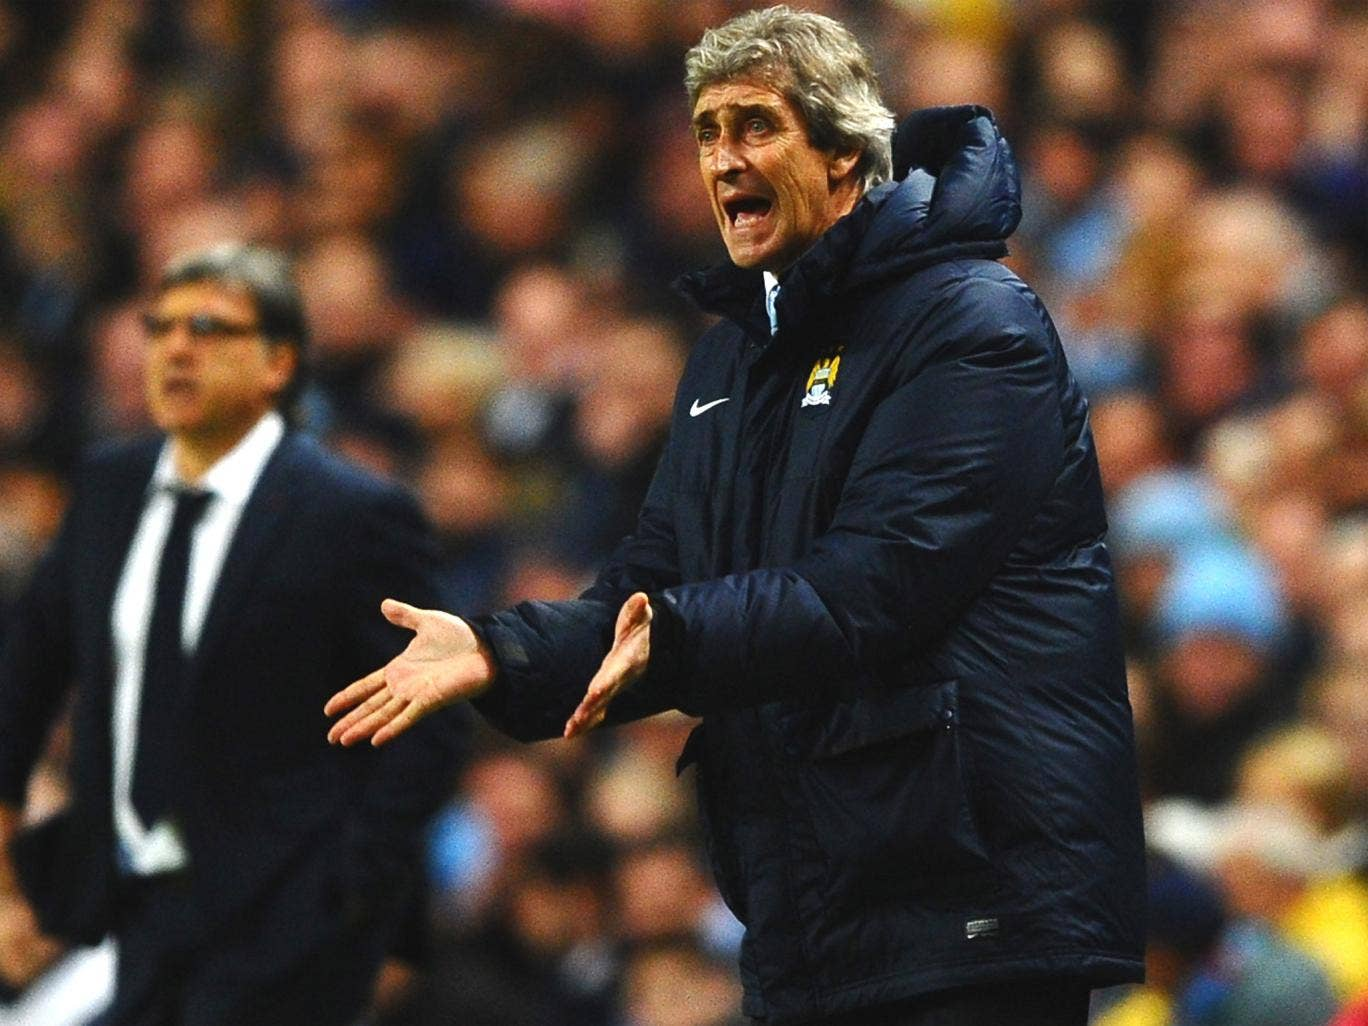 Manuel Pellegrini was furious over the decision to award Barcelona a penalty